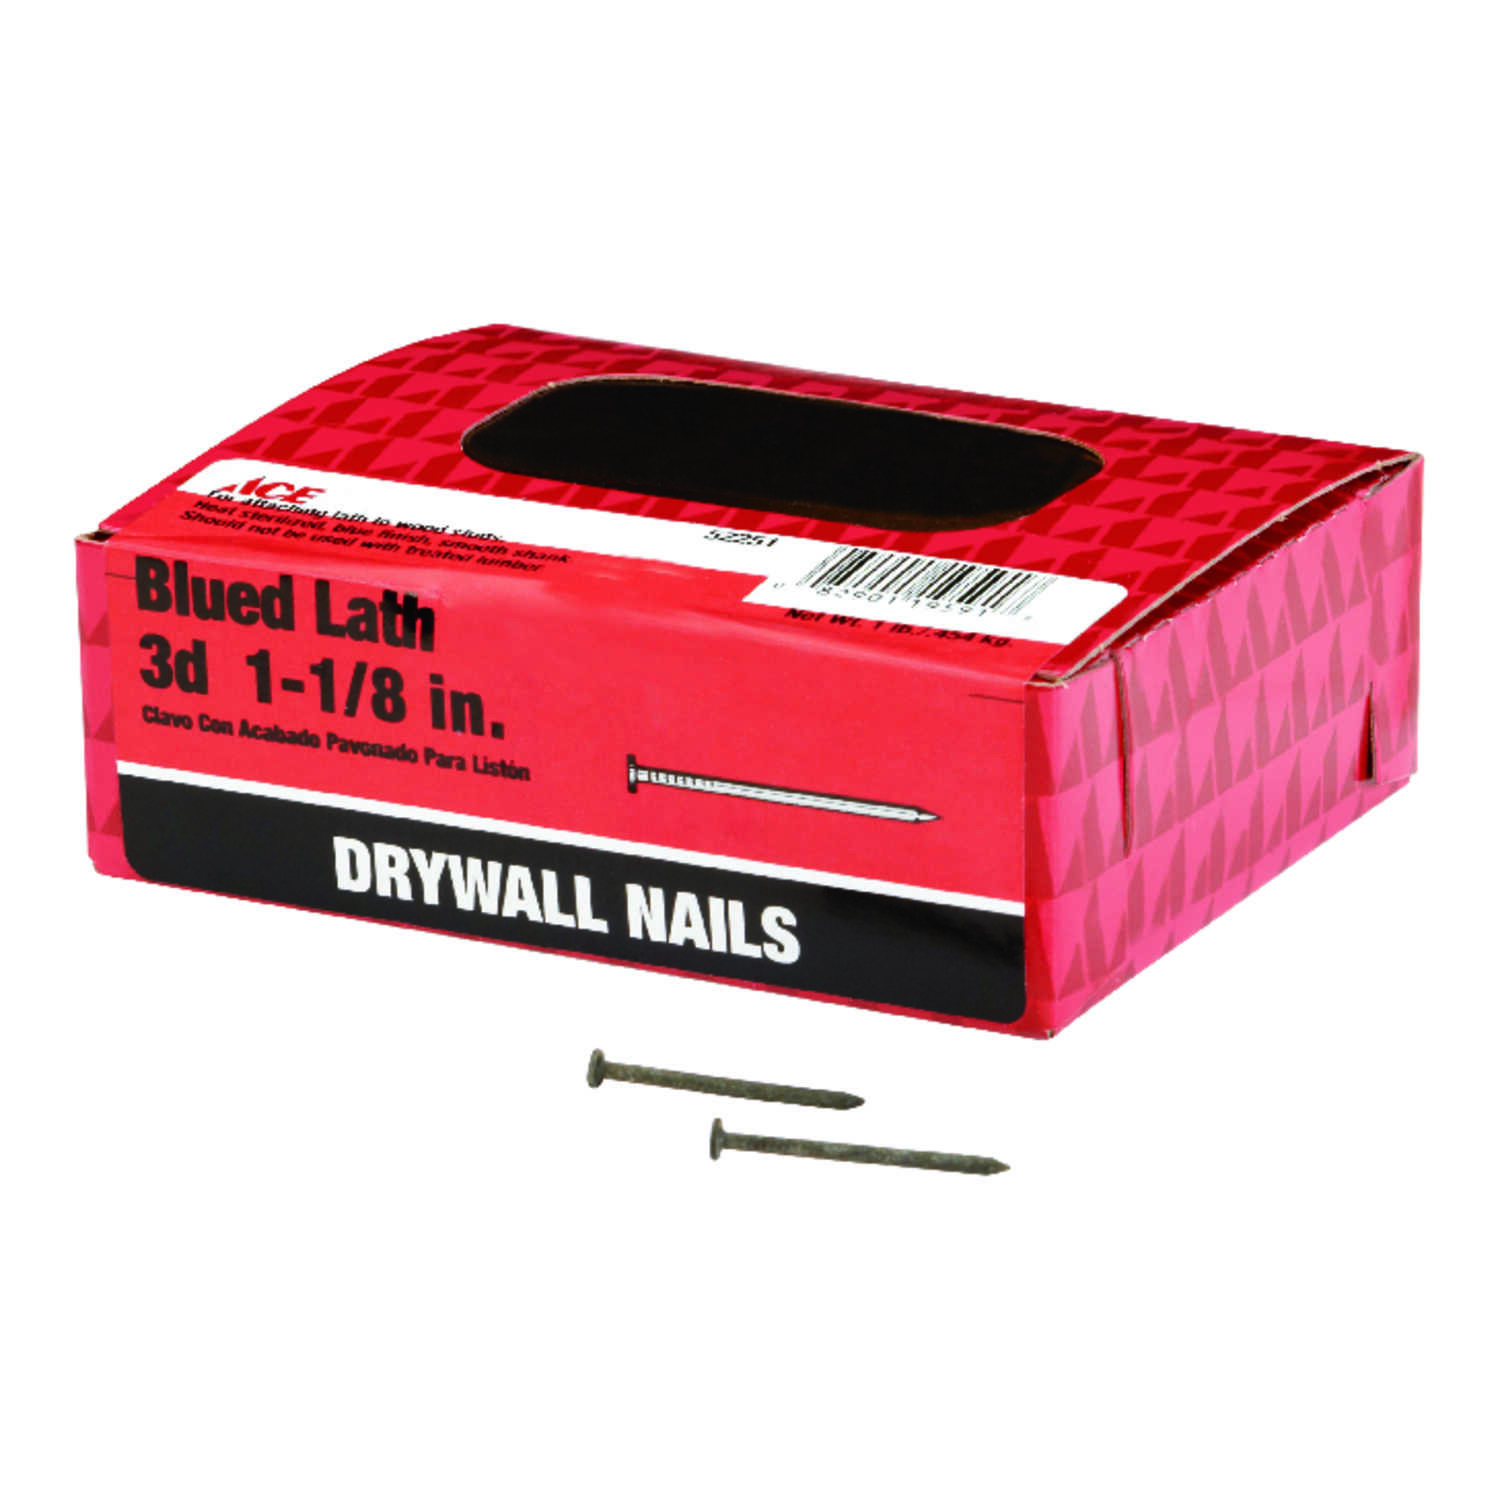 Ace  3D  1-1/8 in. L Drywall  Steel  Nail  Flat Head Smooth Shank  1  1 lb.